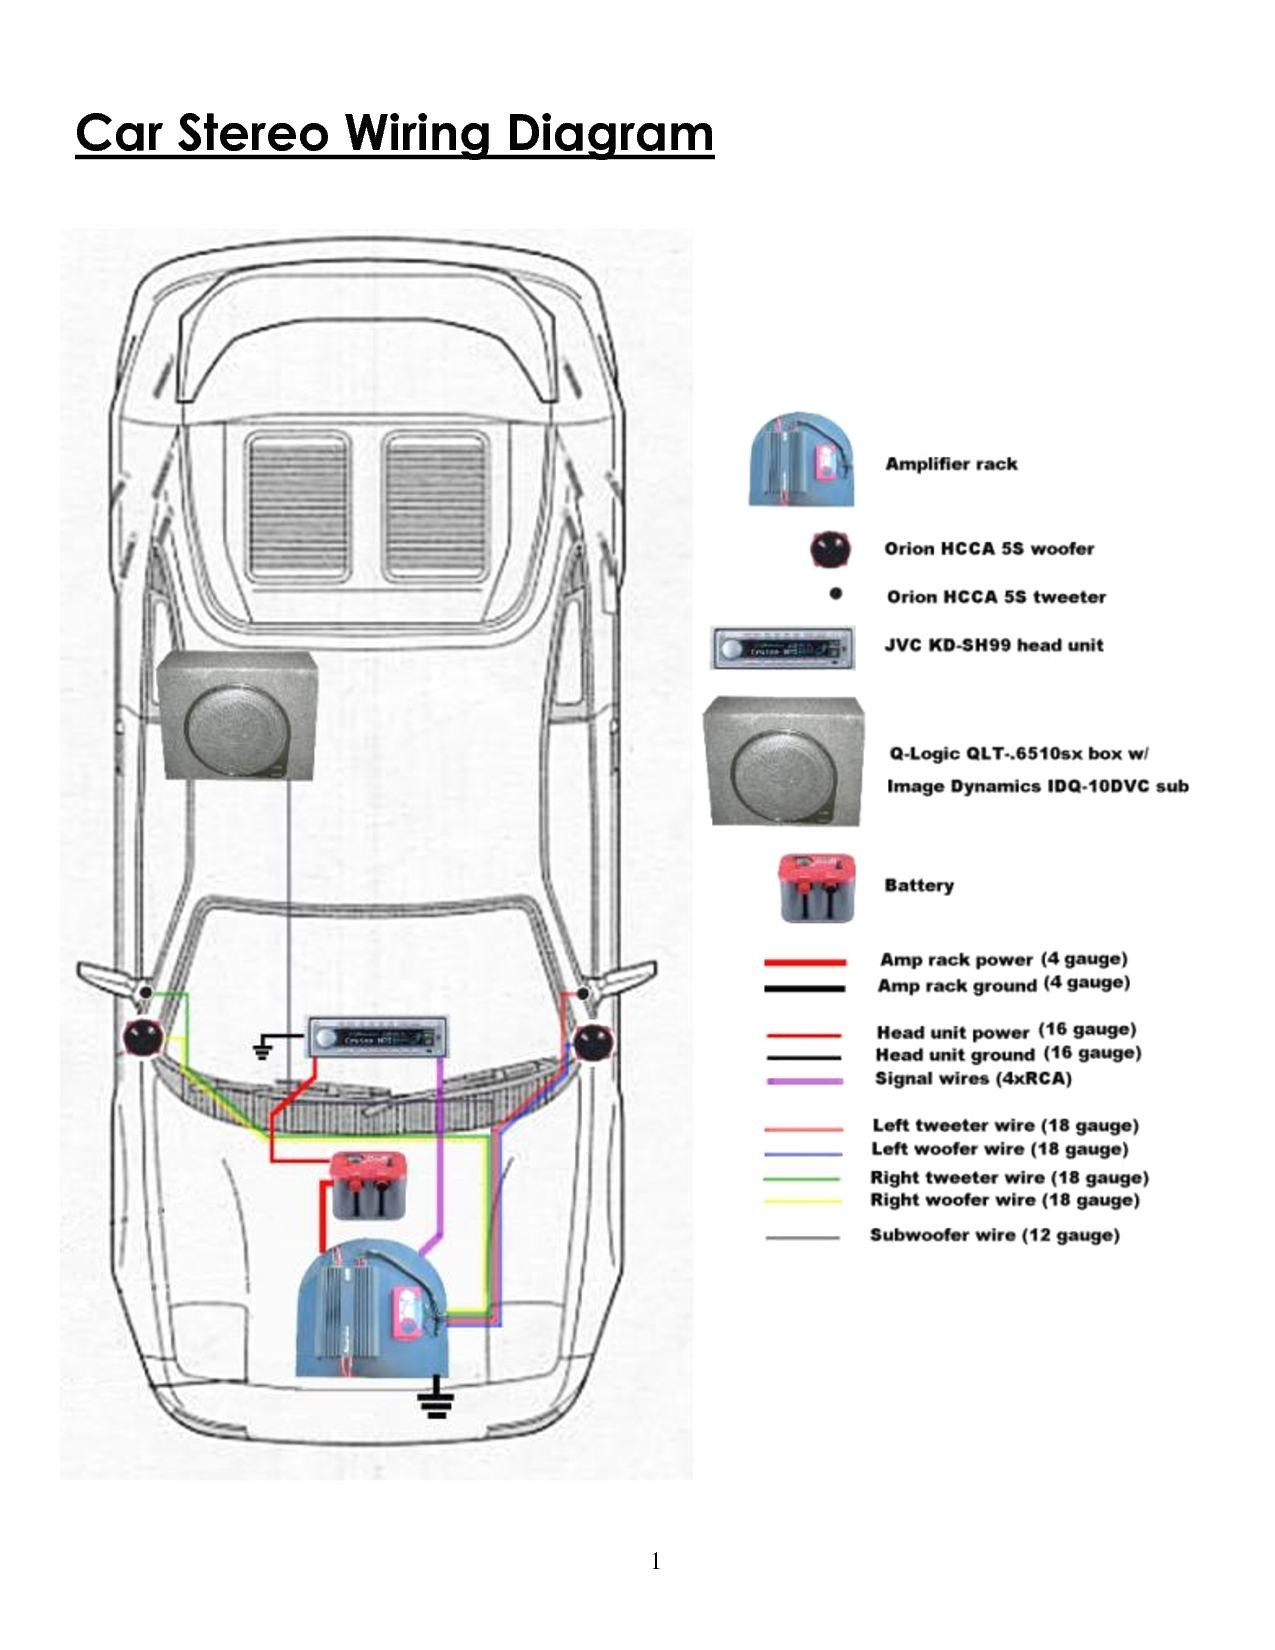 hight resolution of diagram of car gears car subwoofer wiring diagram dual battery wiring data of diagram of car